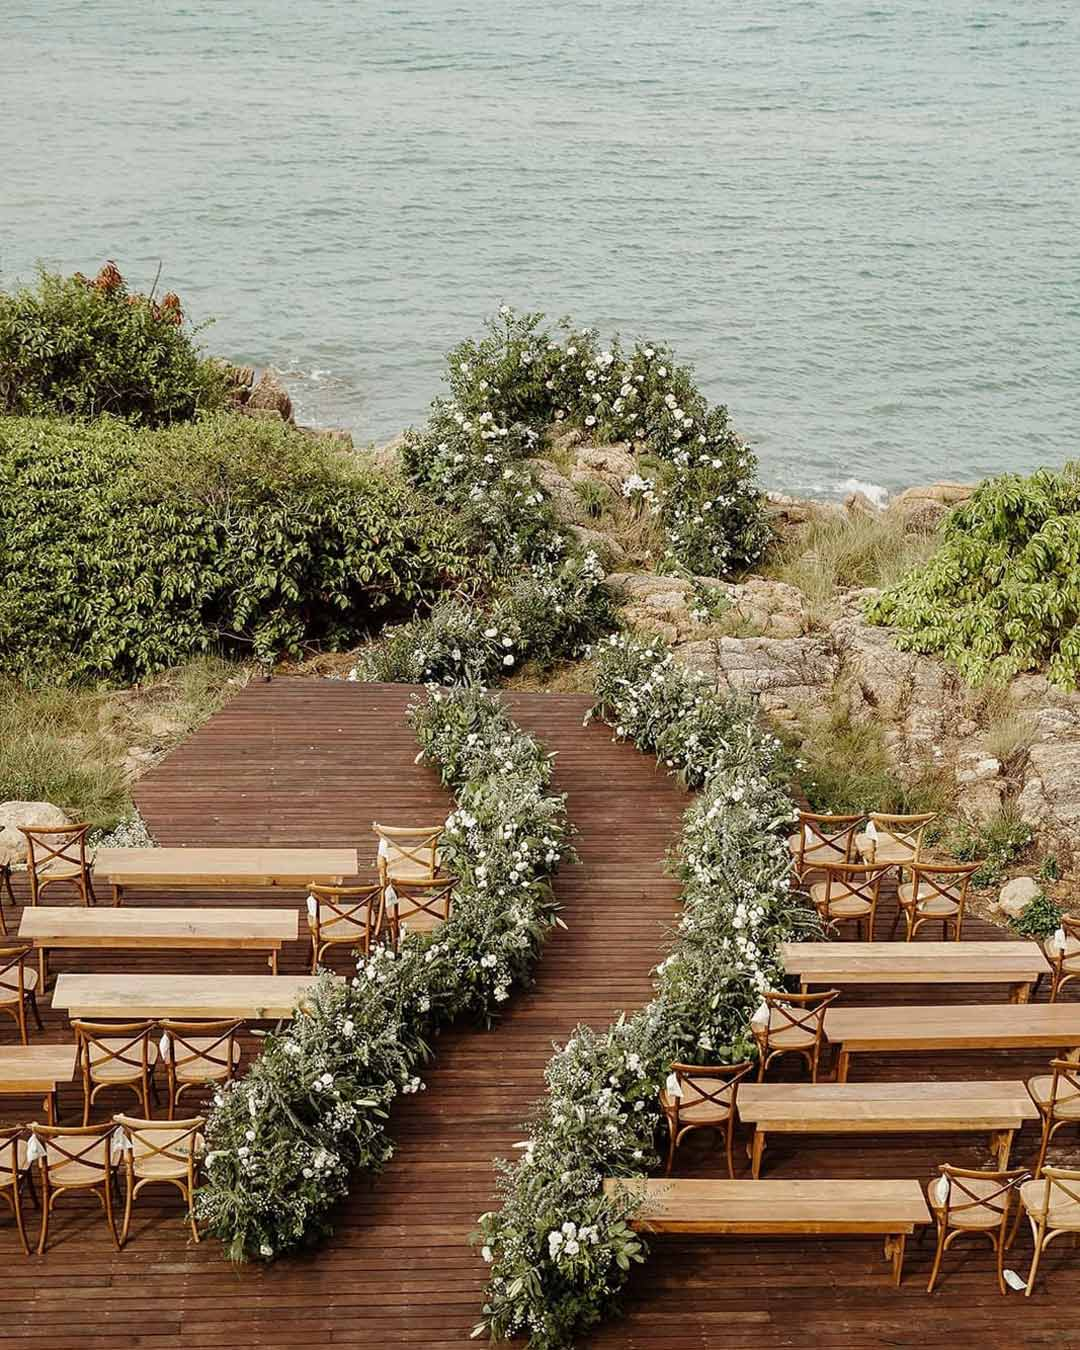 rustic wedding ideas aisle decor greenery flowers